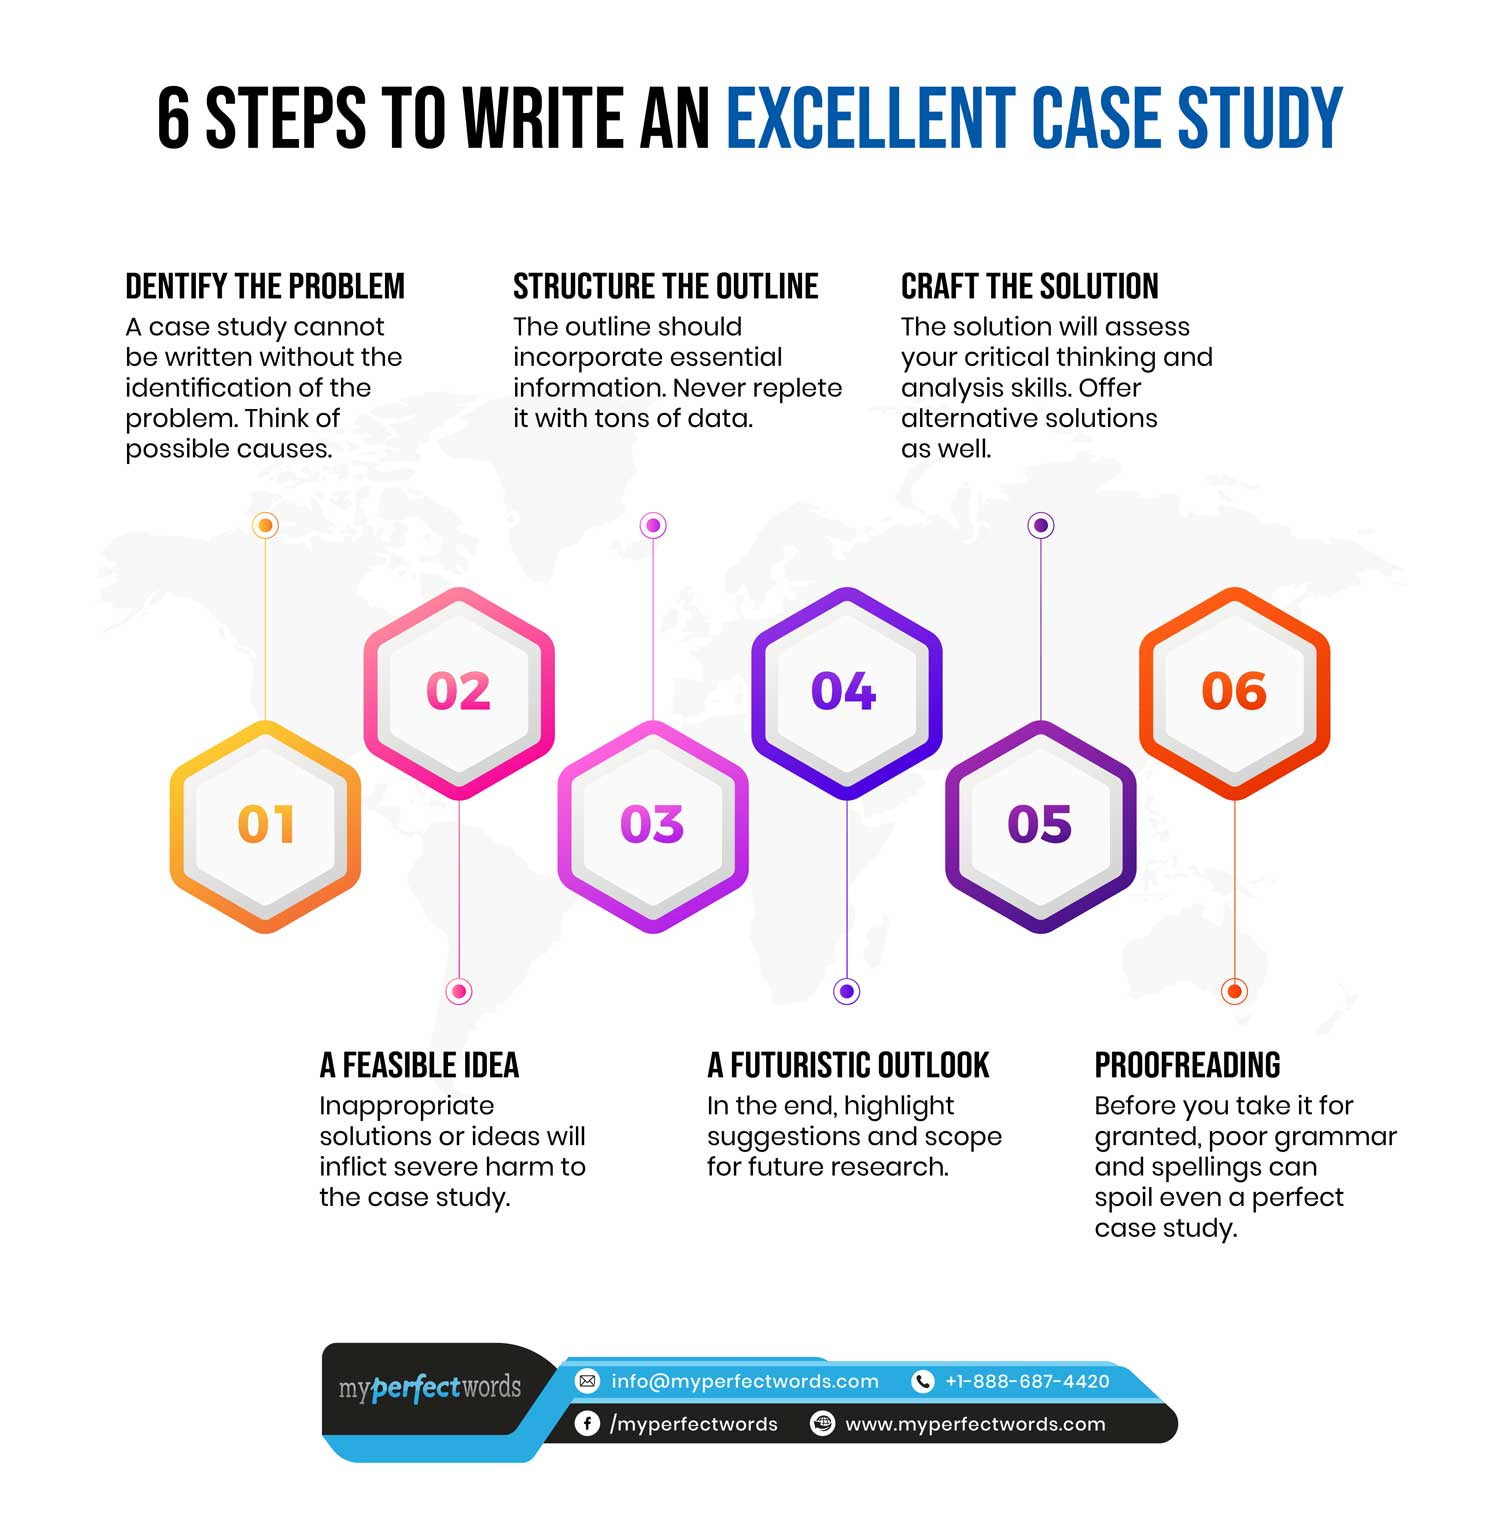 Guide about writing a case study